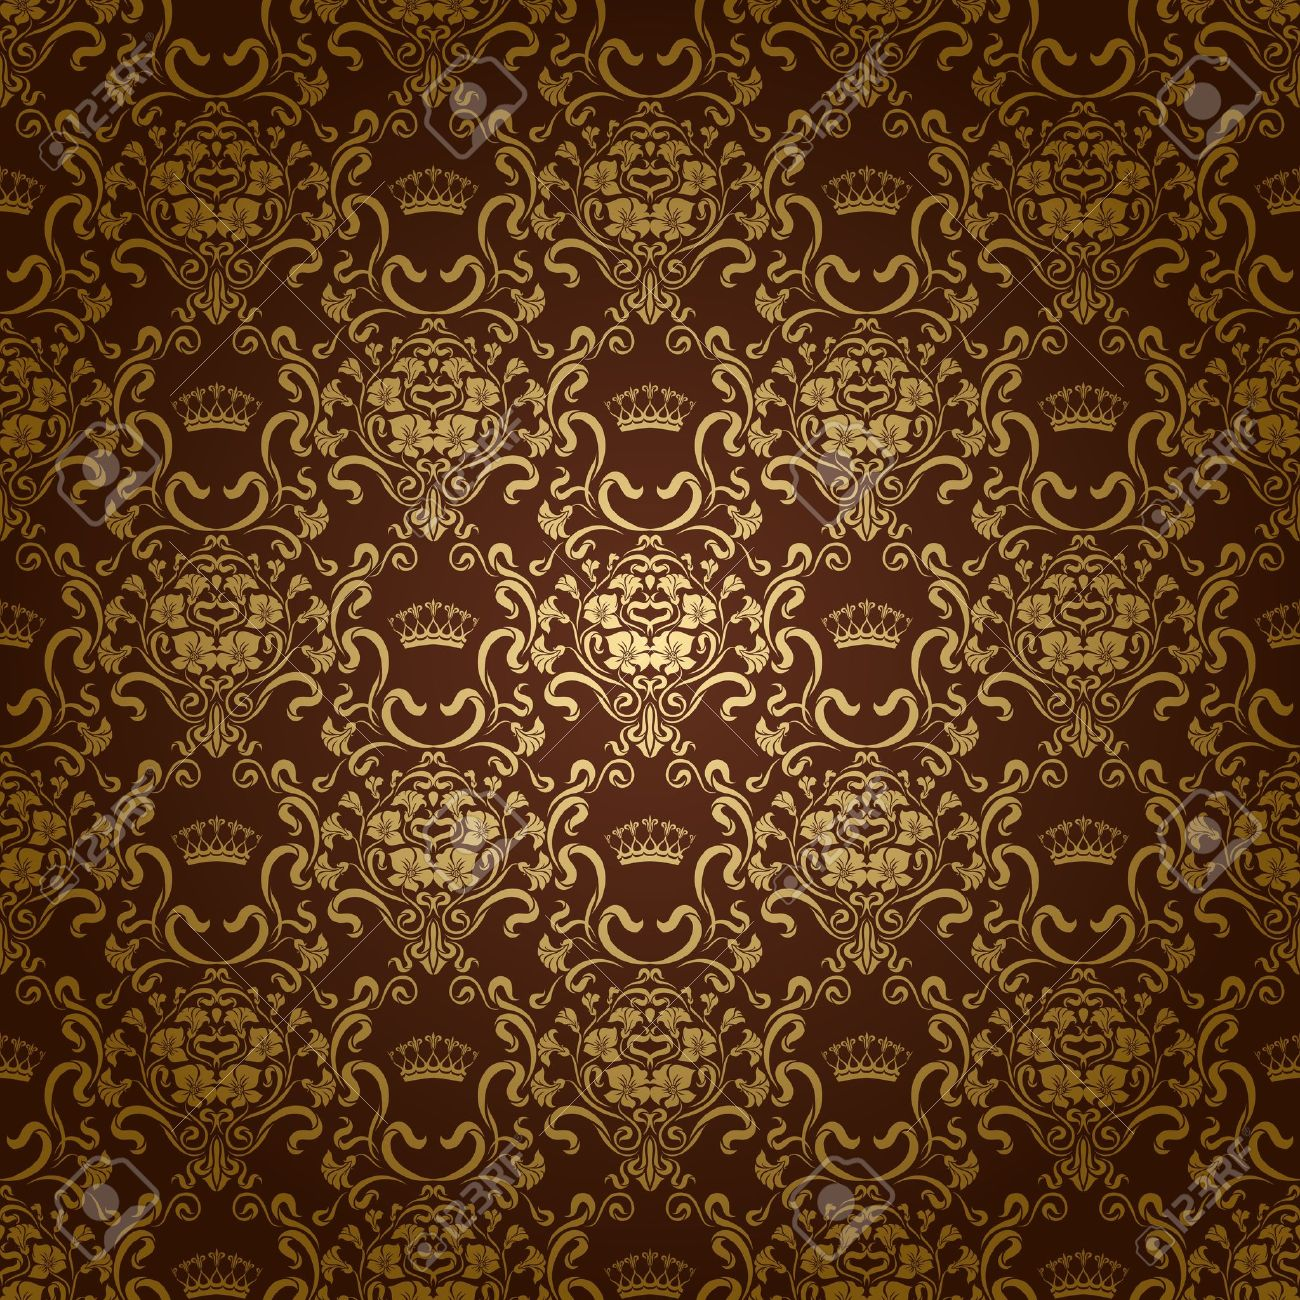 Damask Seamless Floral Pattern Royal Wallpaper Flowers And Crowns On A Dark Background EPS 10 Stock